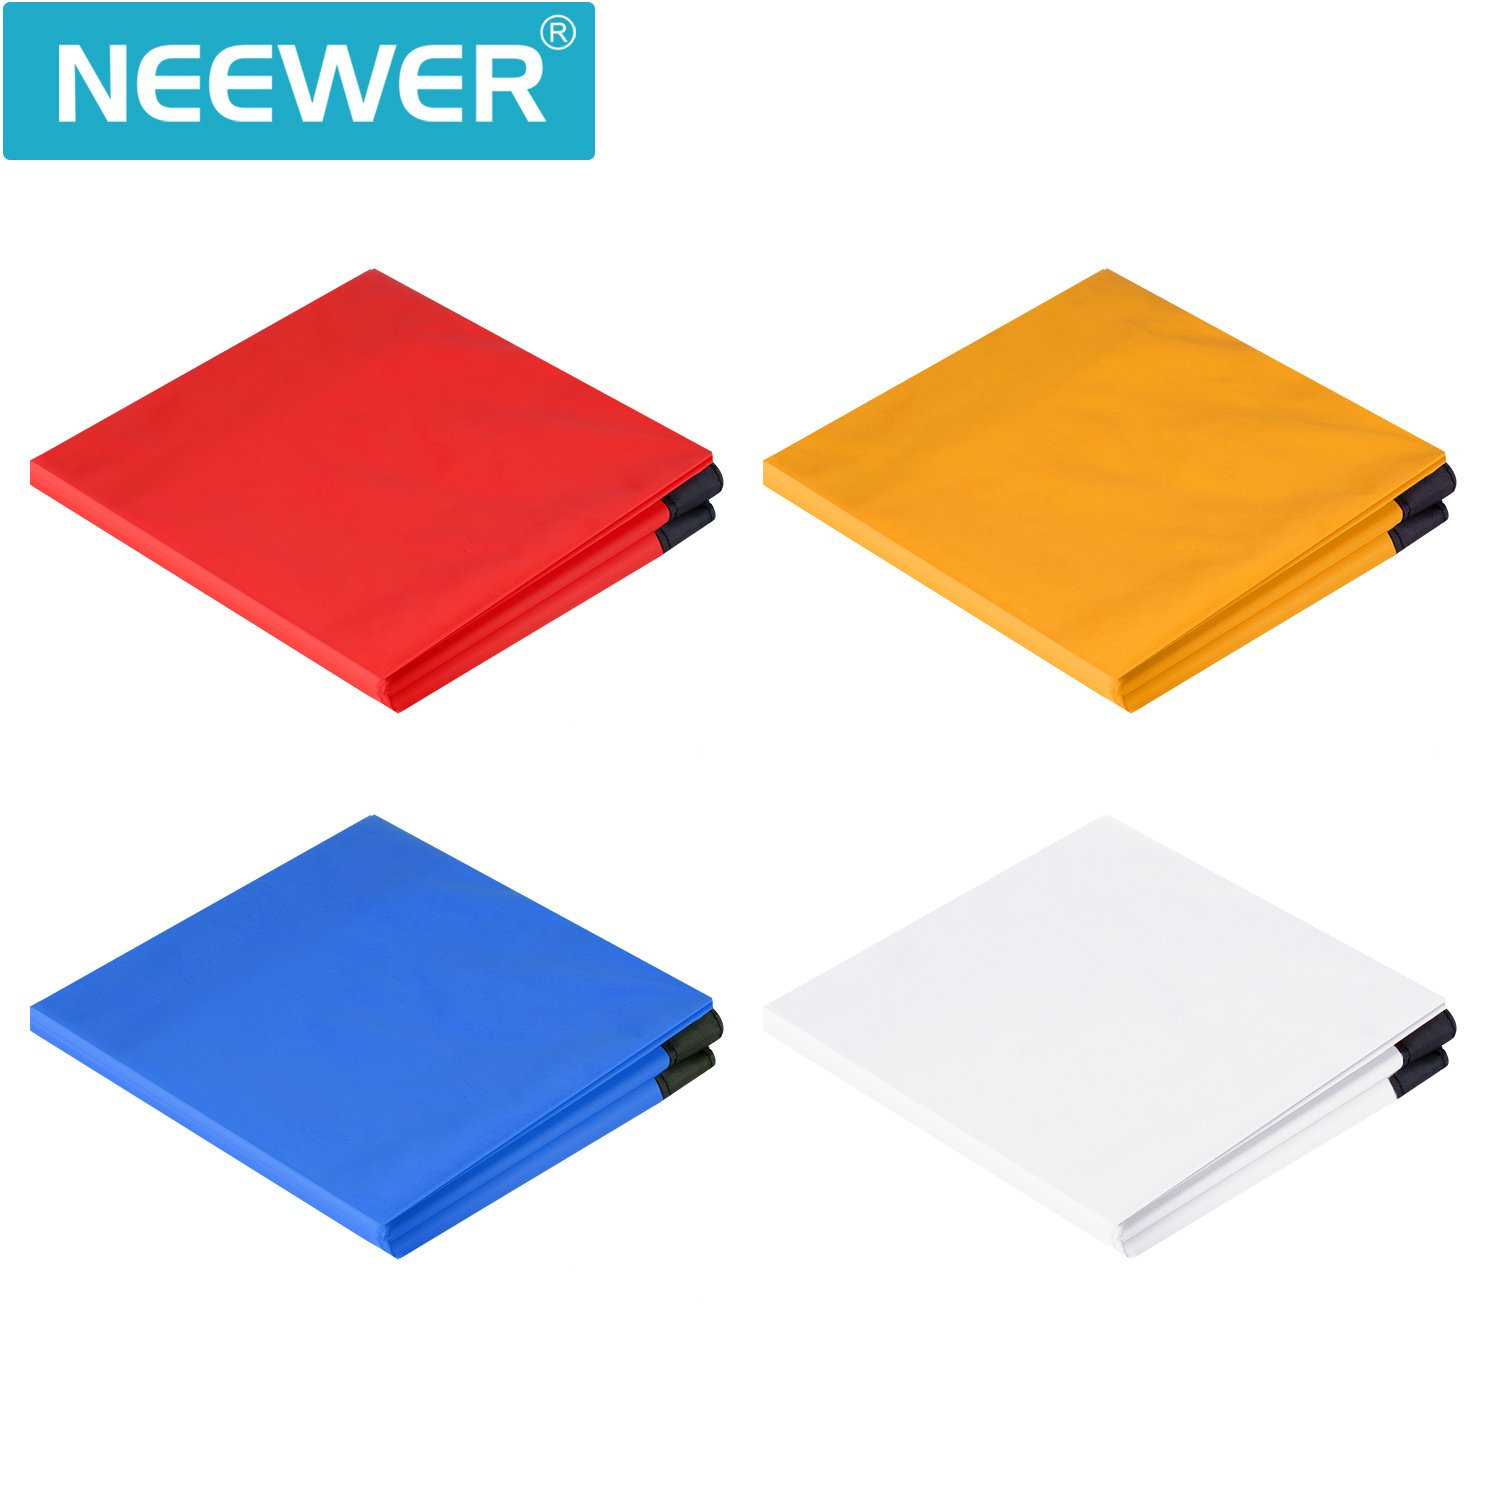 Yellow Softbox NOT Included Neewer Photography Softbox Diffuser 25x25 inches//64x64 centimeters with 4 Color Red Blue White